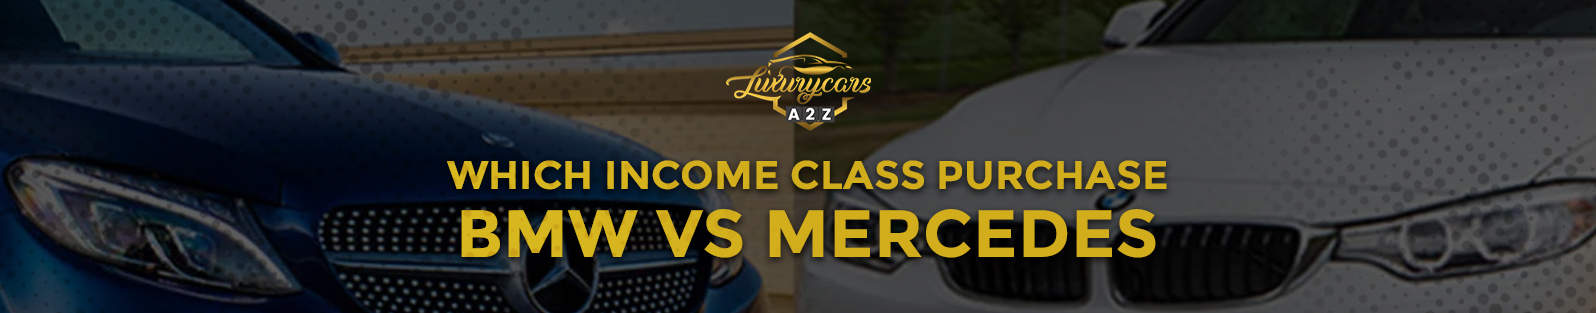 which income class purchase bmw vs mercedes